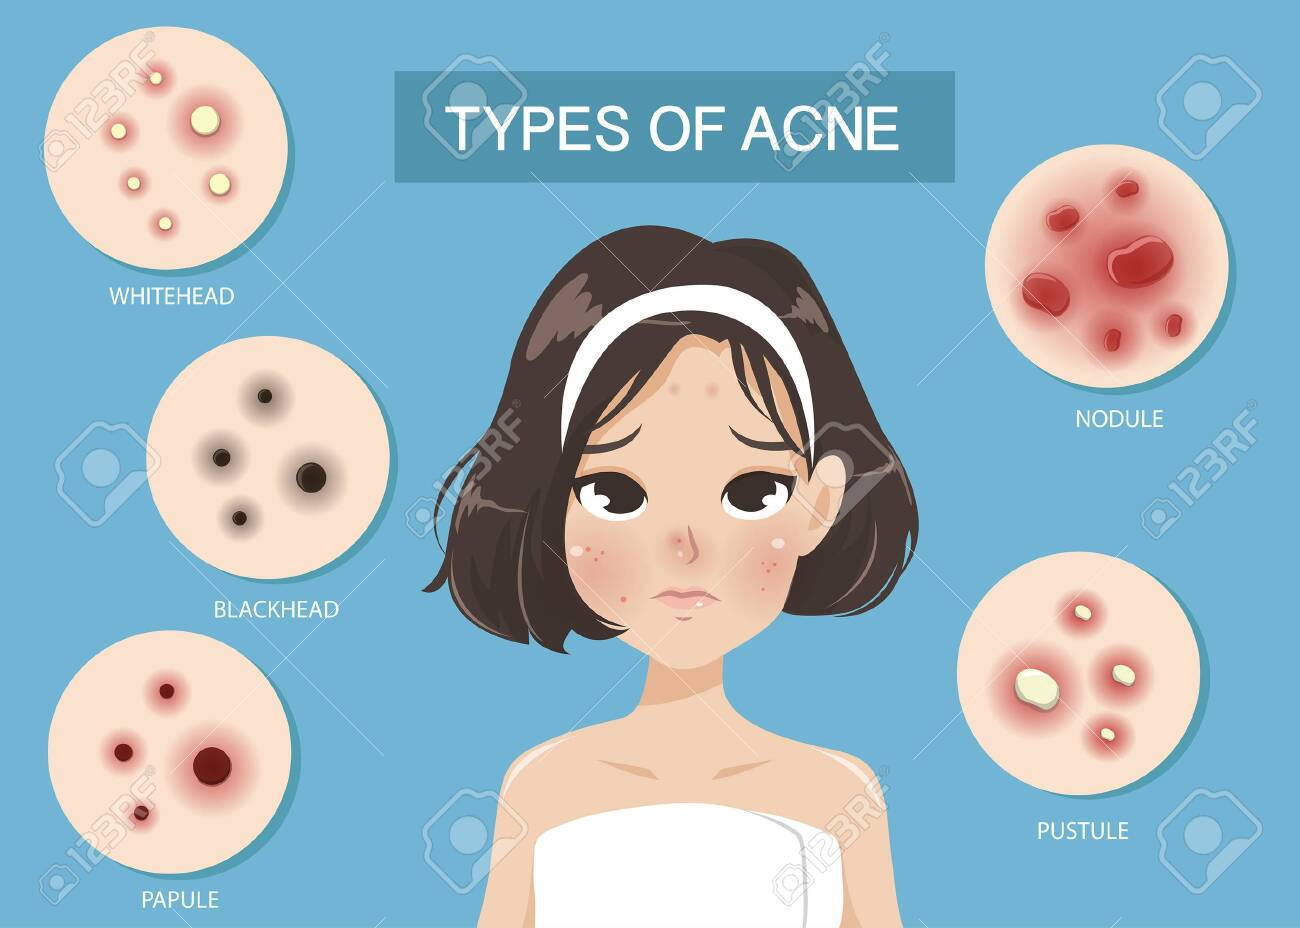 Types of acne occur on the face of the girl shot hair. - 123528972